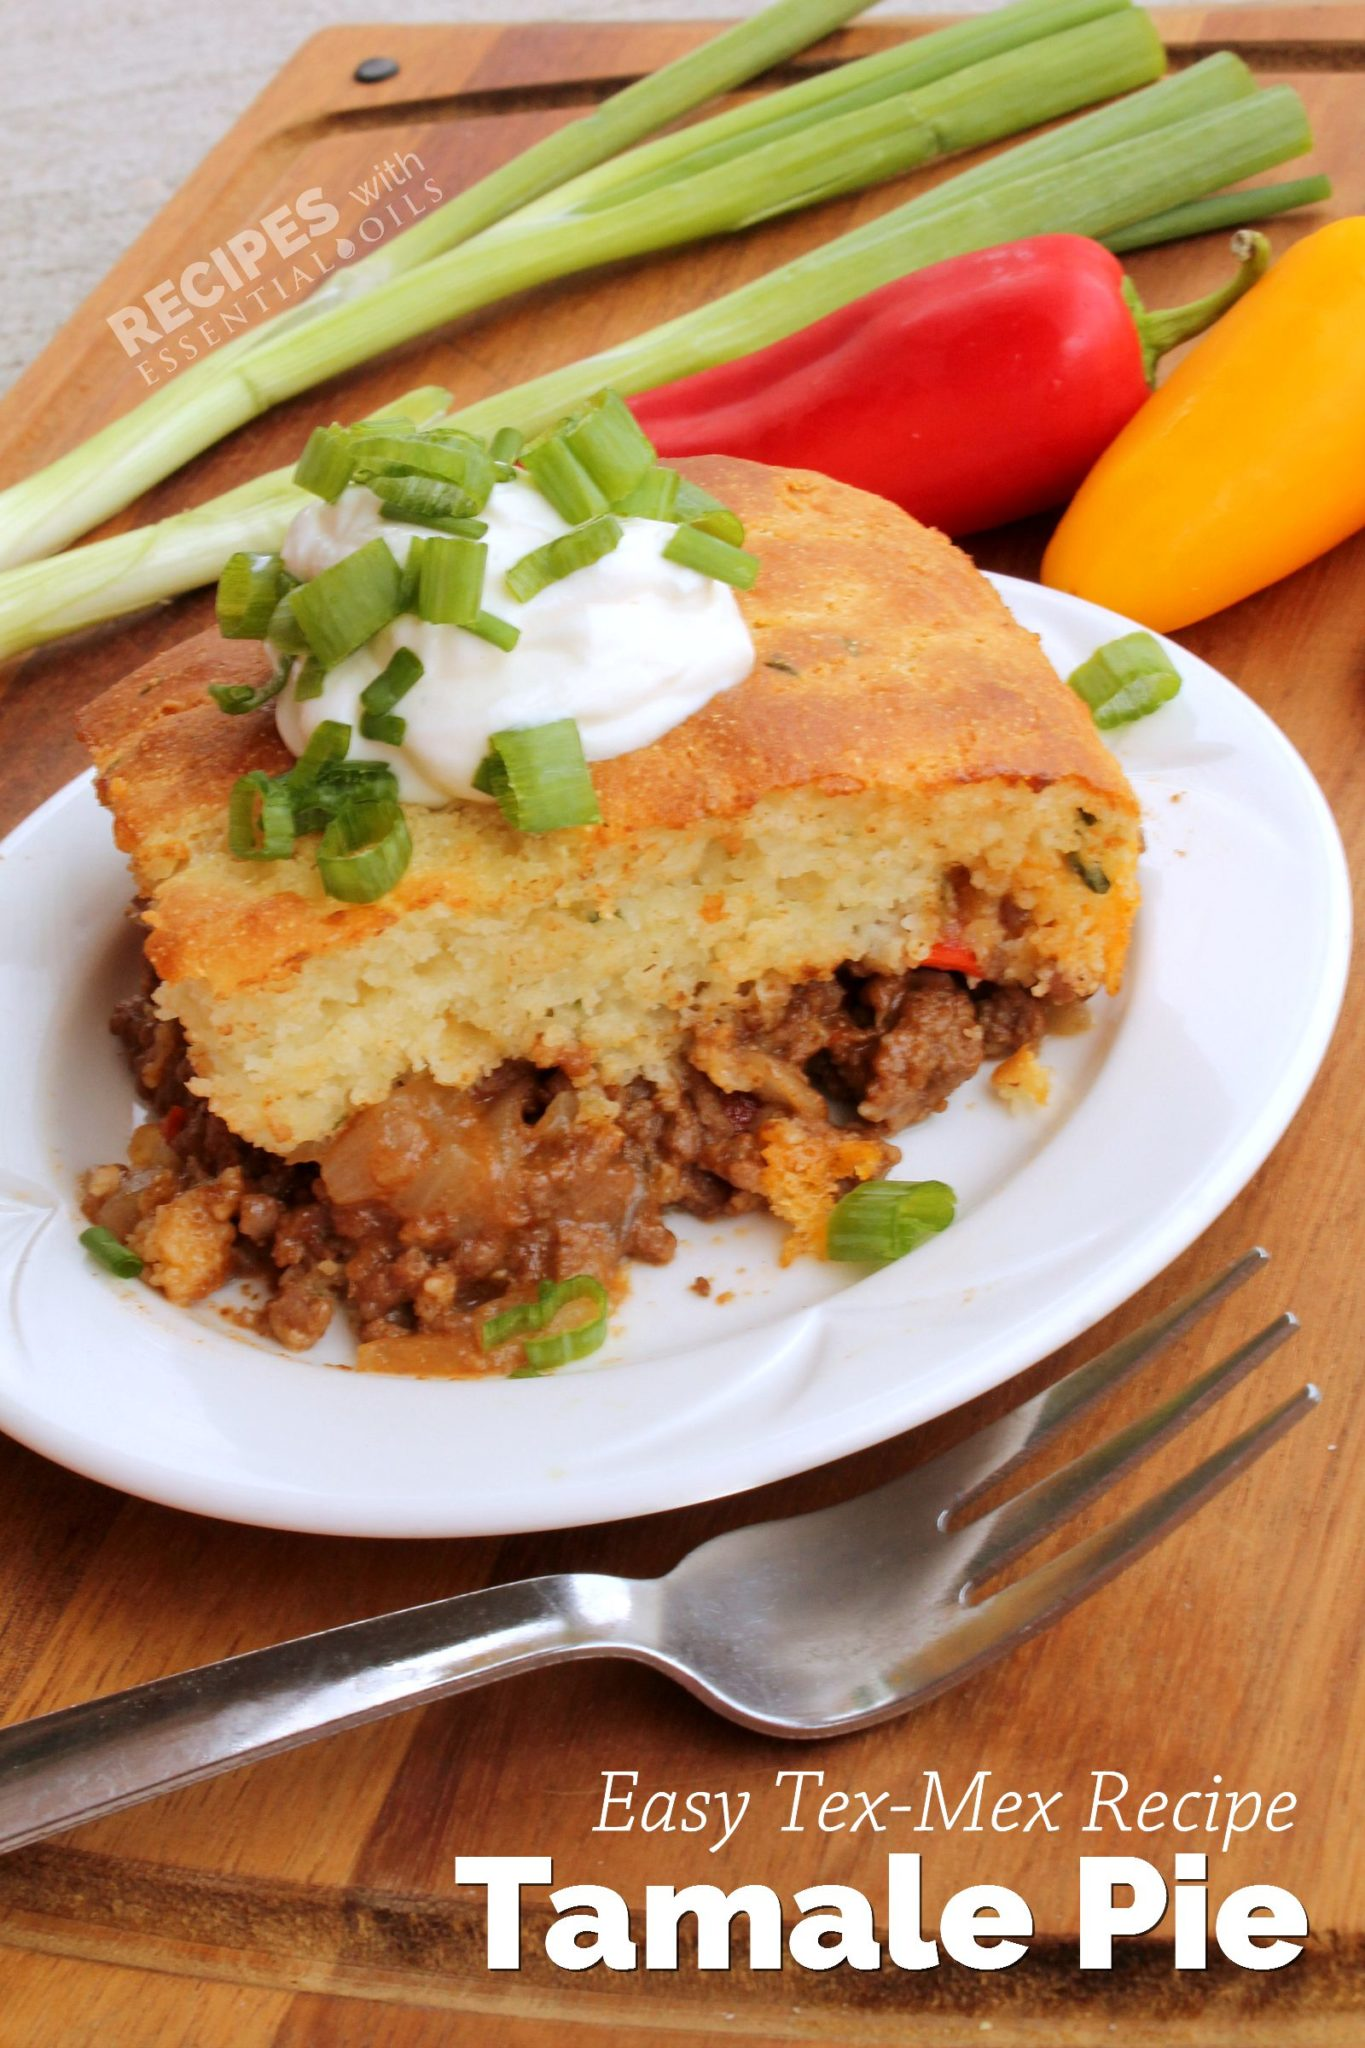 Easy Tex Mex Recipe for Tamale Pie from RecipesWithEssentialOils.com